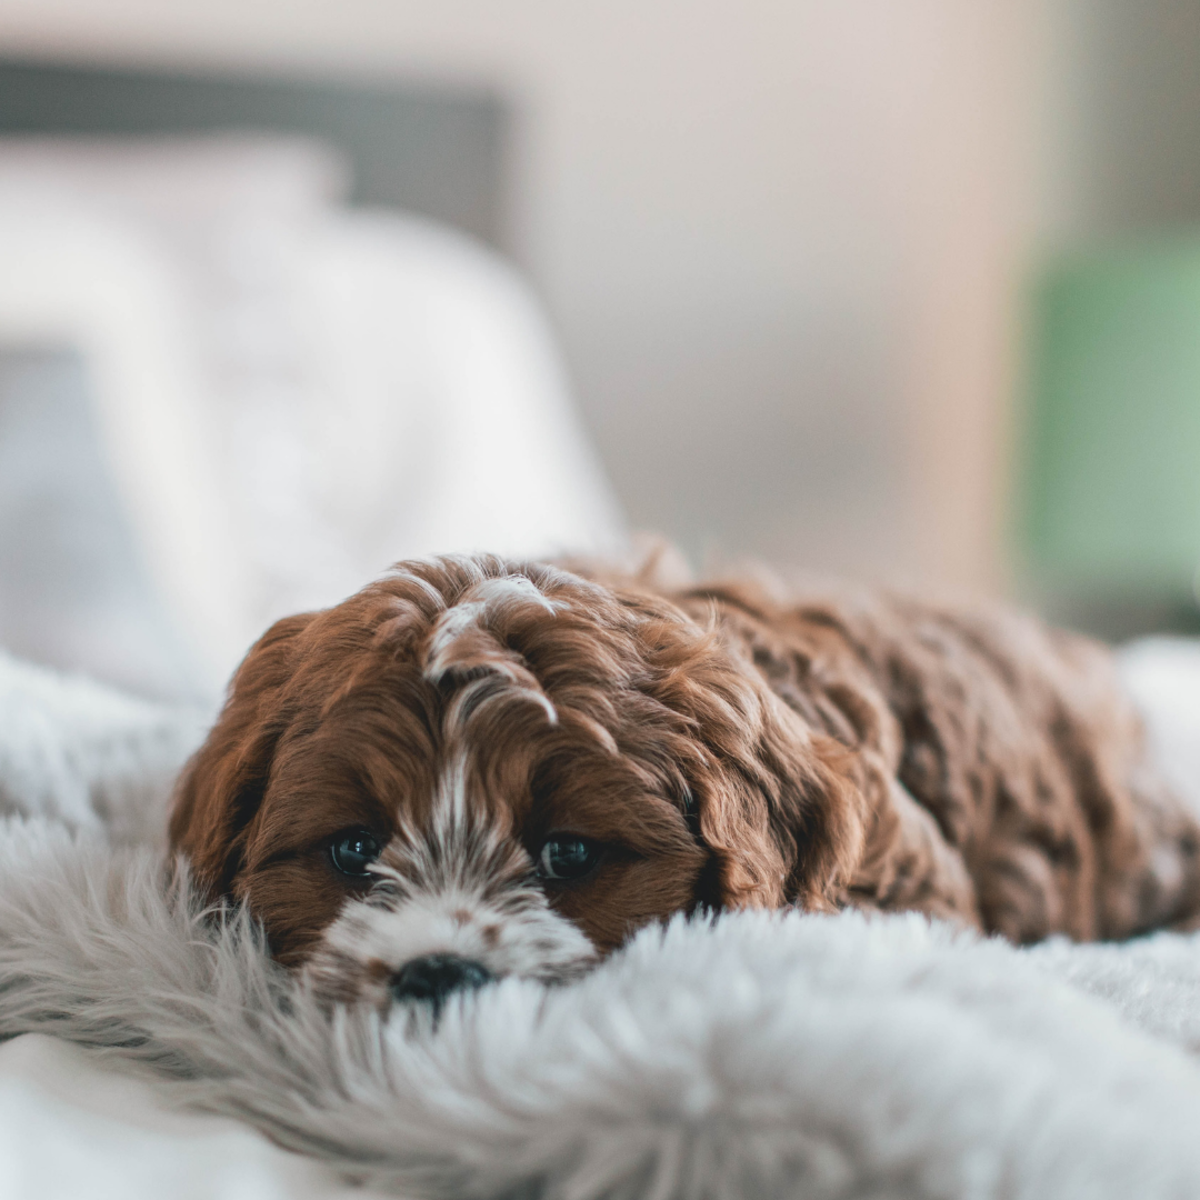 Give your pup a break if they grow tired.